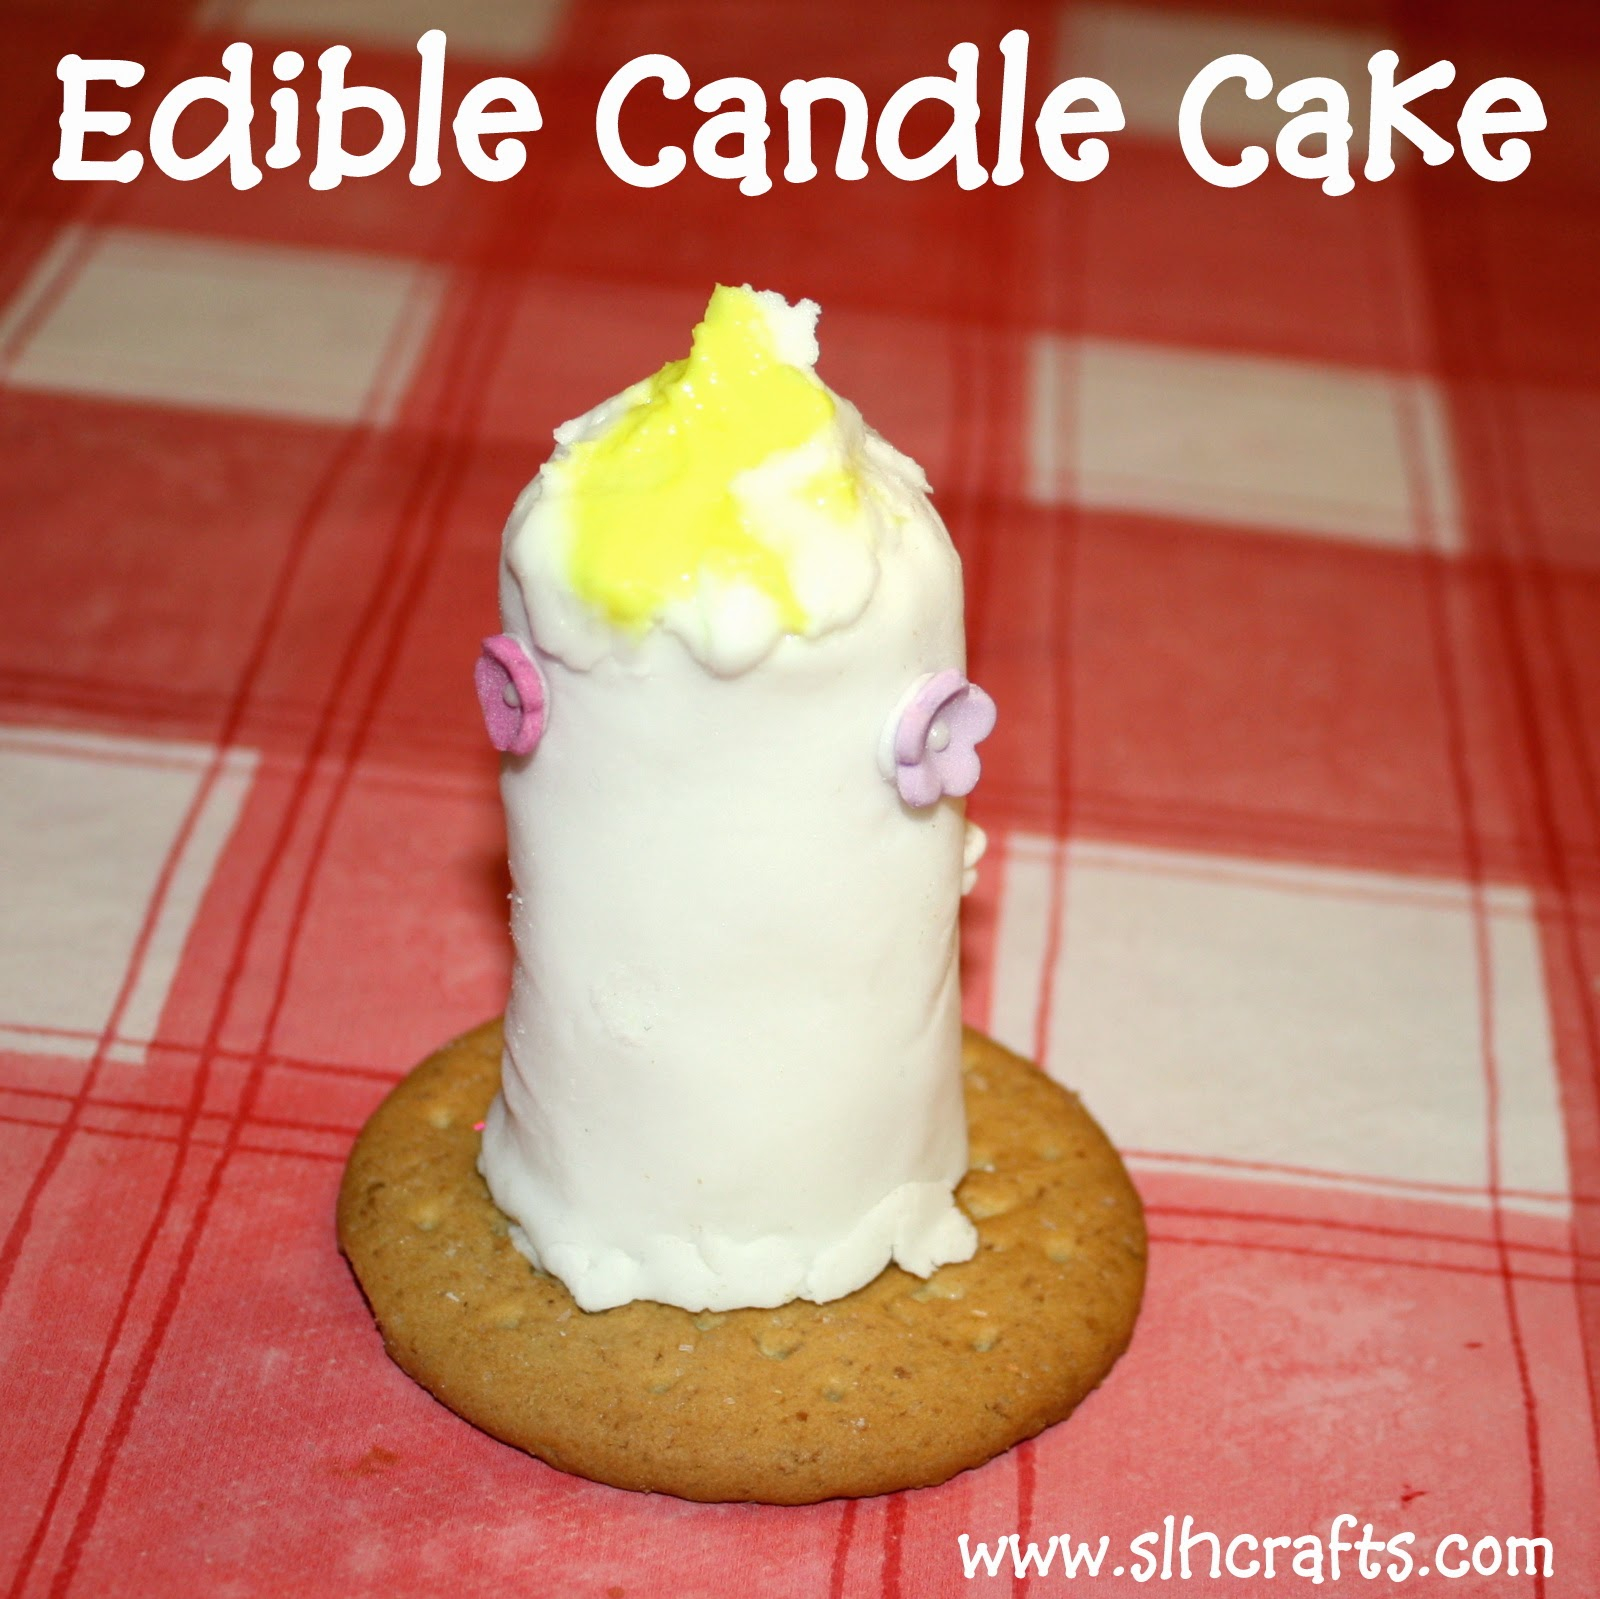 edible candle cake